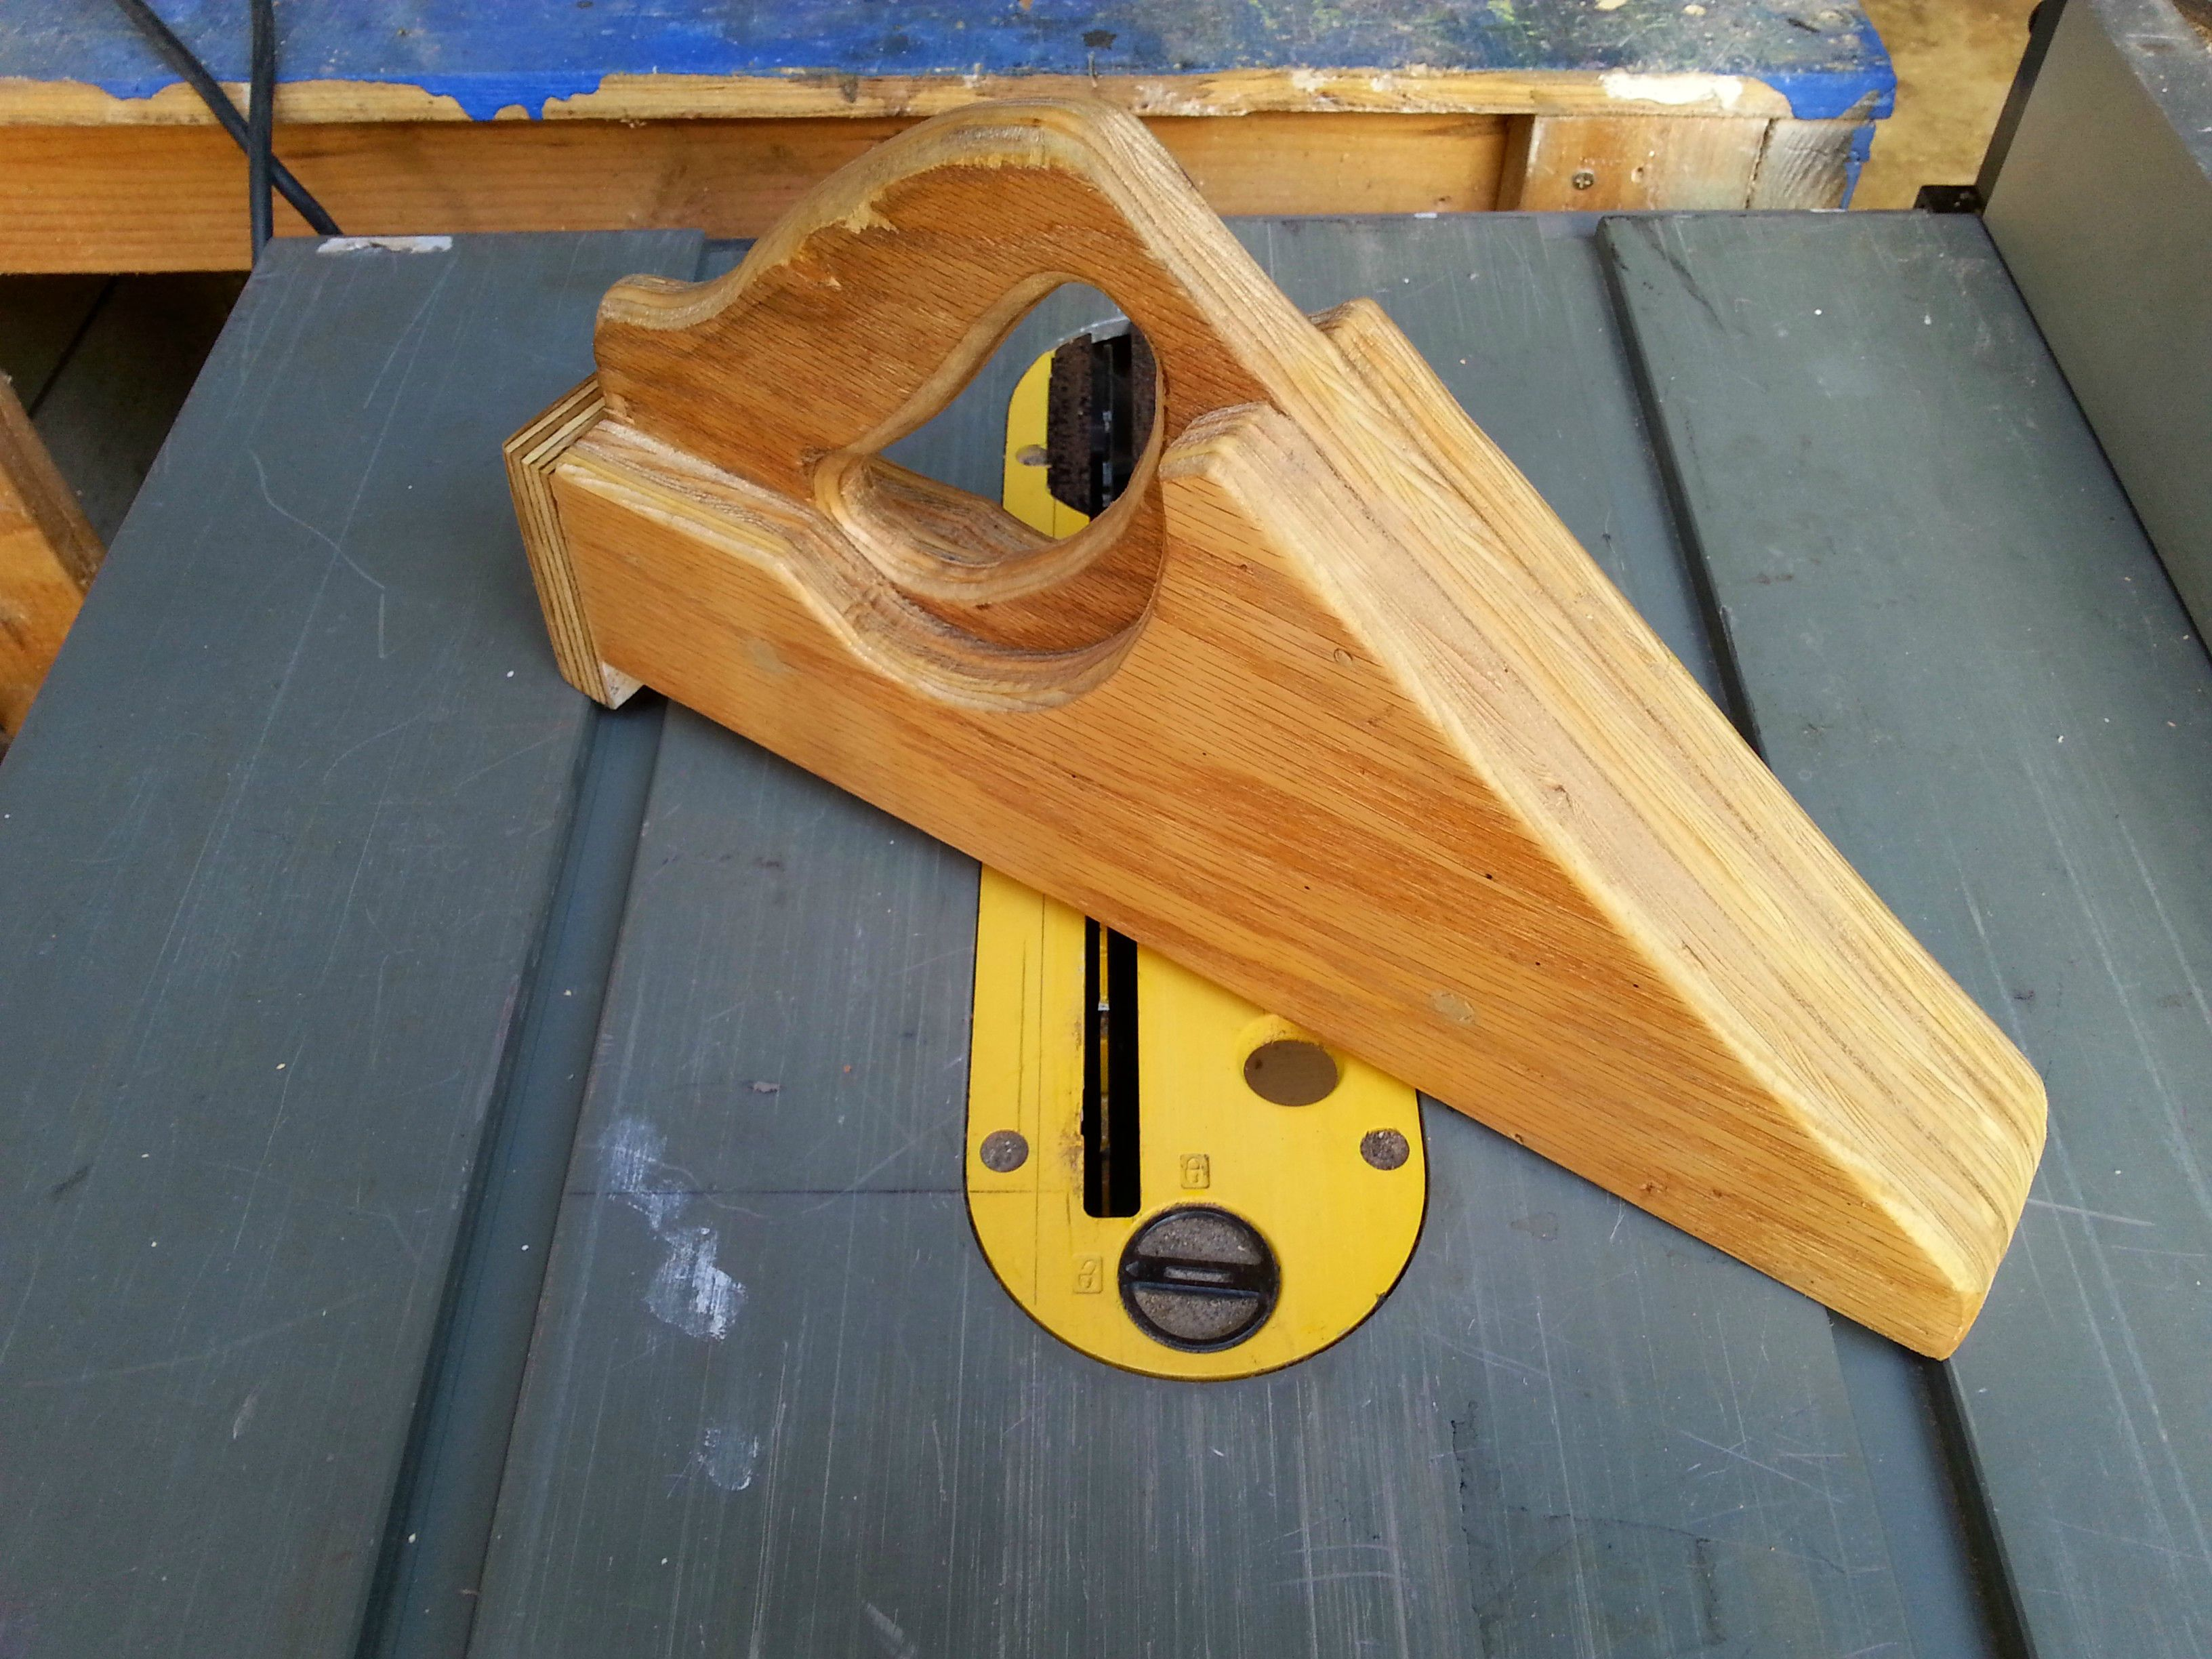 Imgur Table saw push stick, Woodworking saws, Table saw